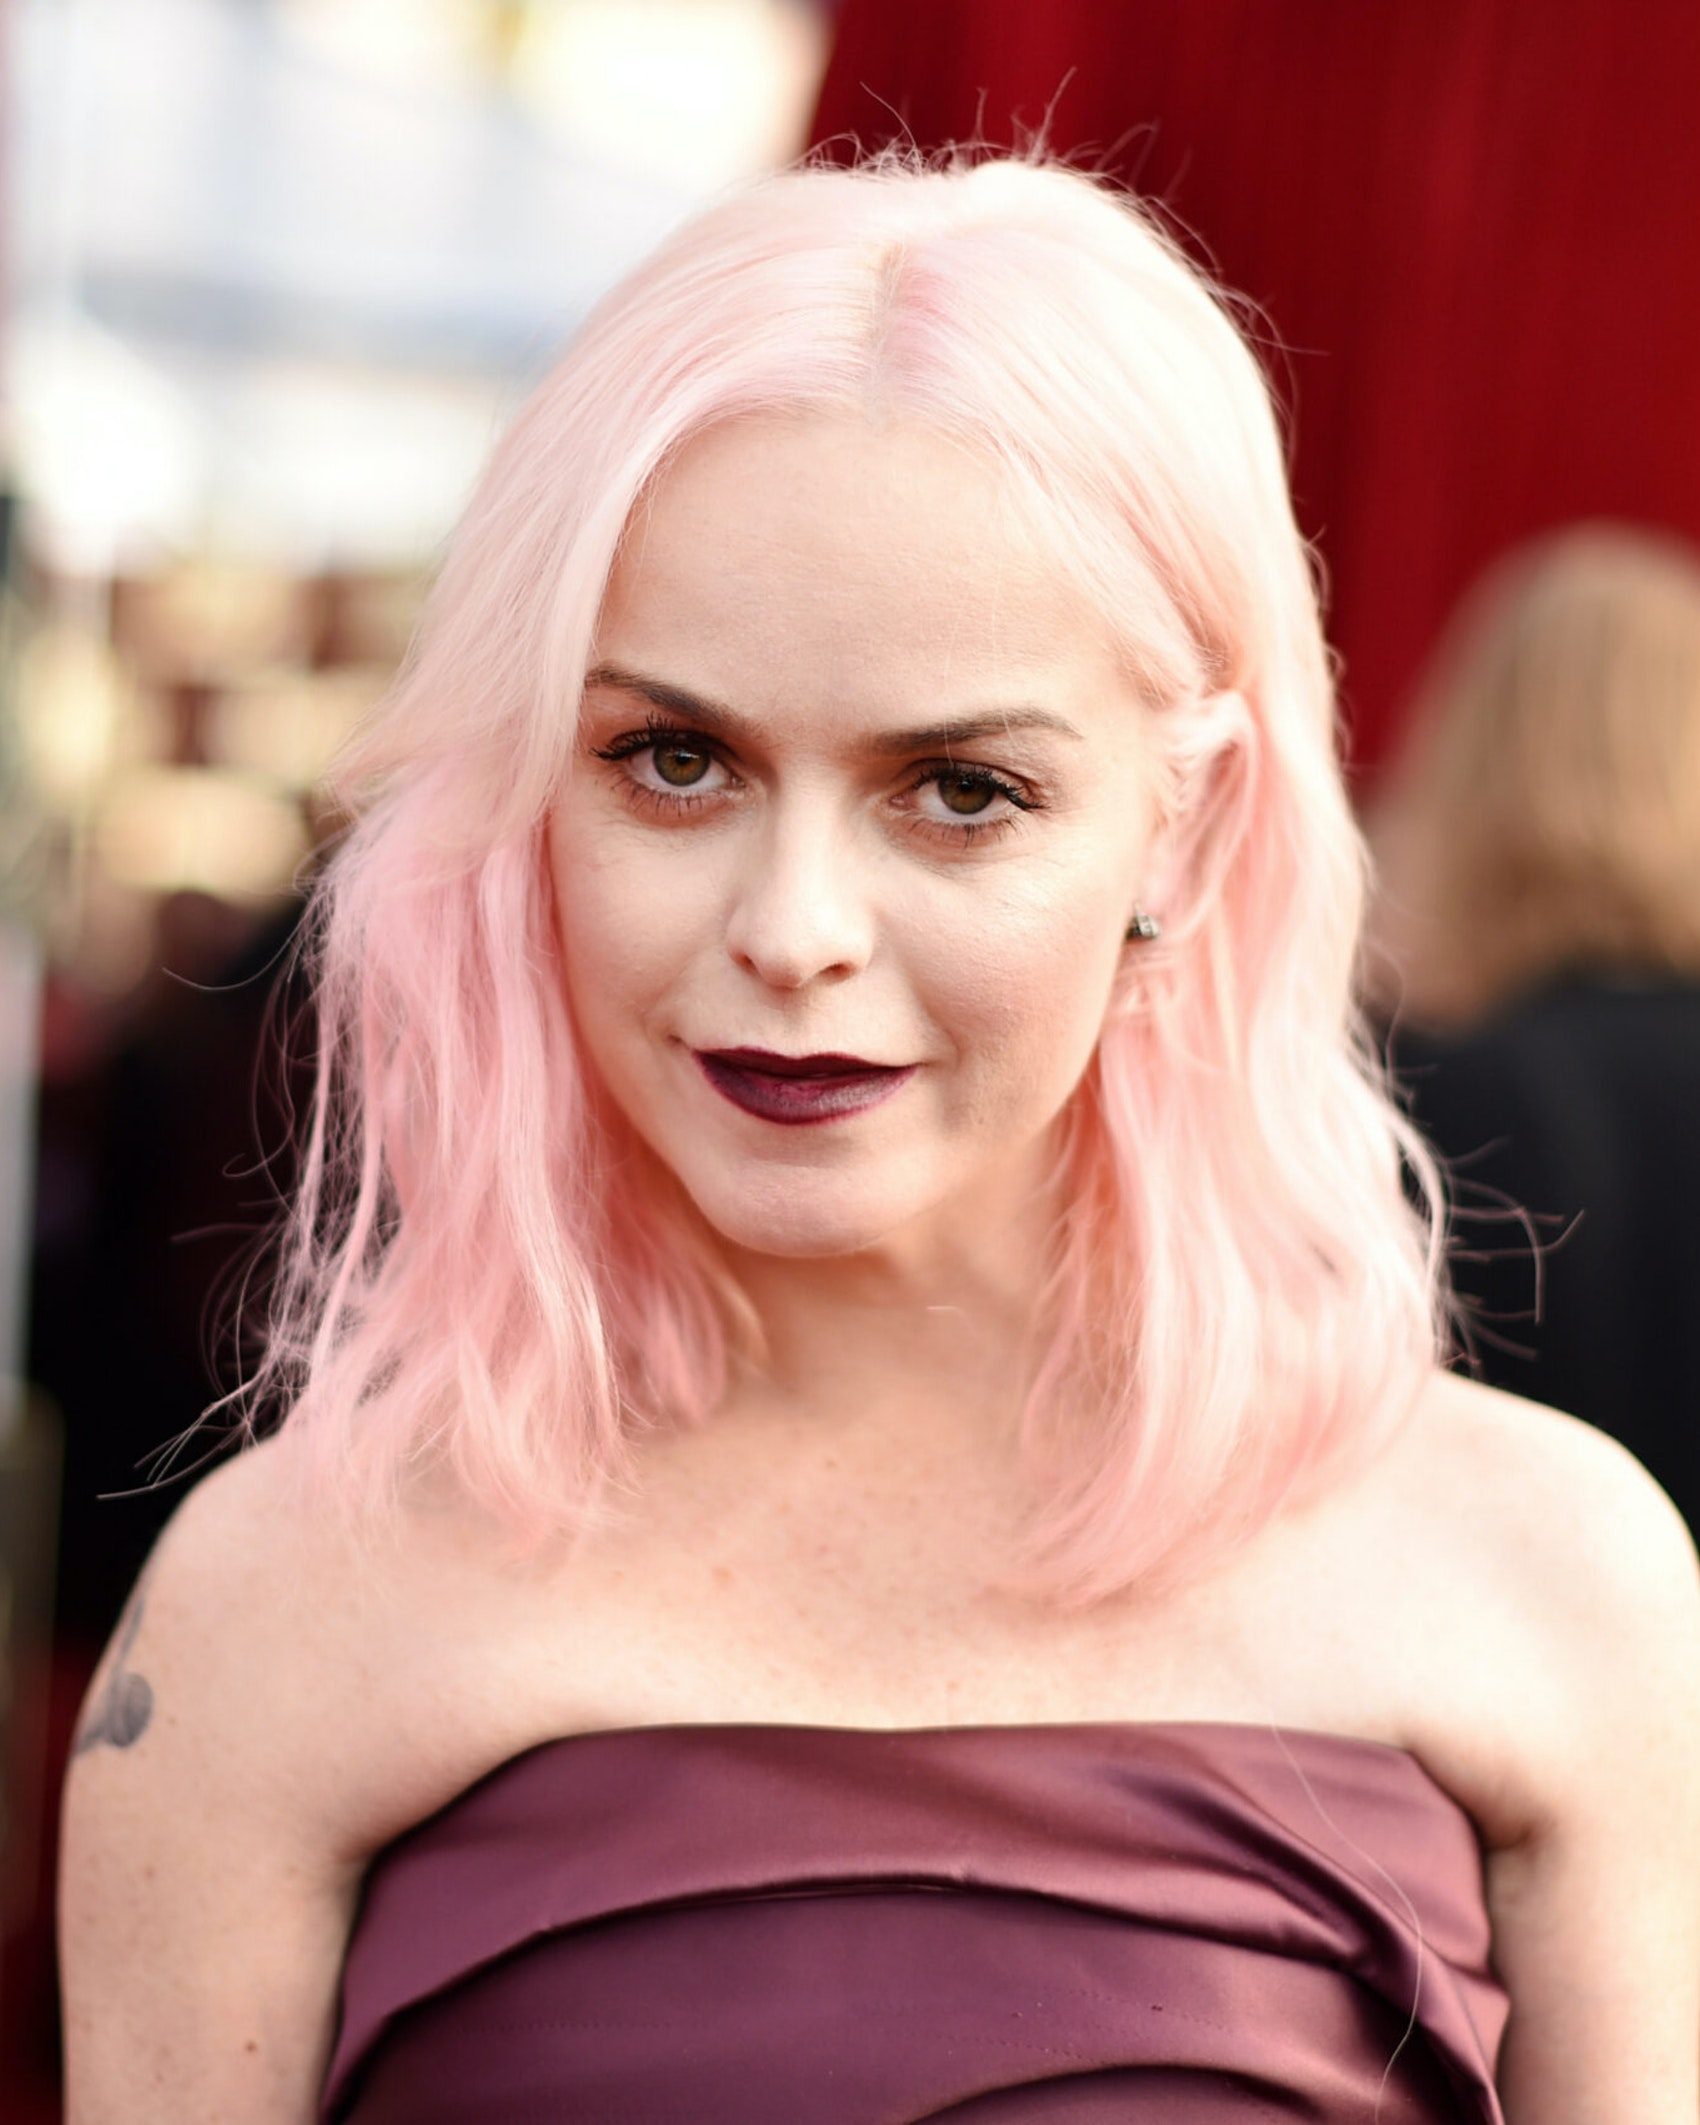 LOS ANGELES, CA - JANUARY 29: Actor Taryn Manning attends The 23rd Annual Screen Actors Guild Awards at The Shrine Auditorium on January 29, 2017 in Los Angeles, California. (Photo by John Shearer/Getty Images for People Magazine)